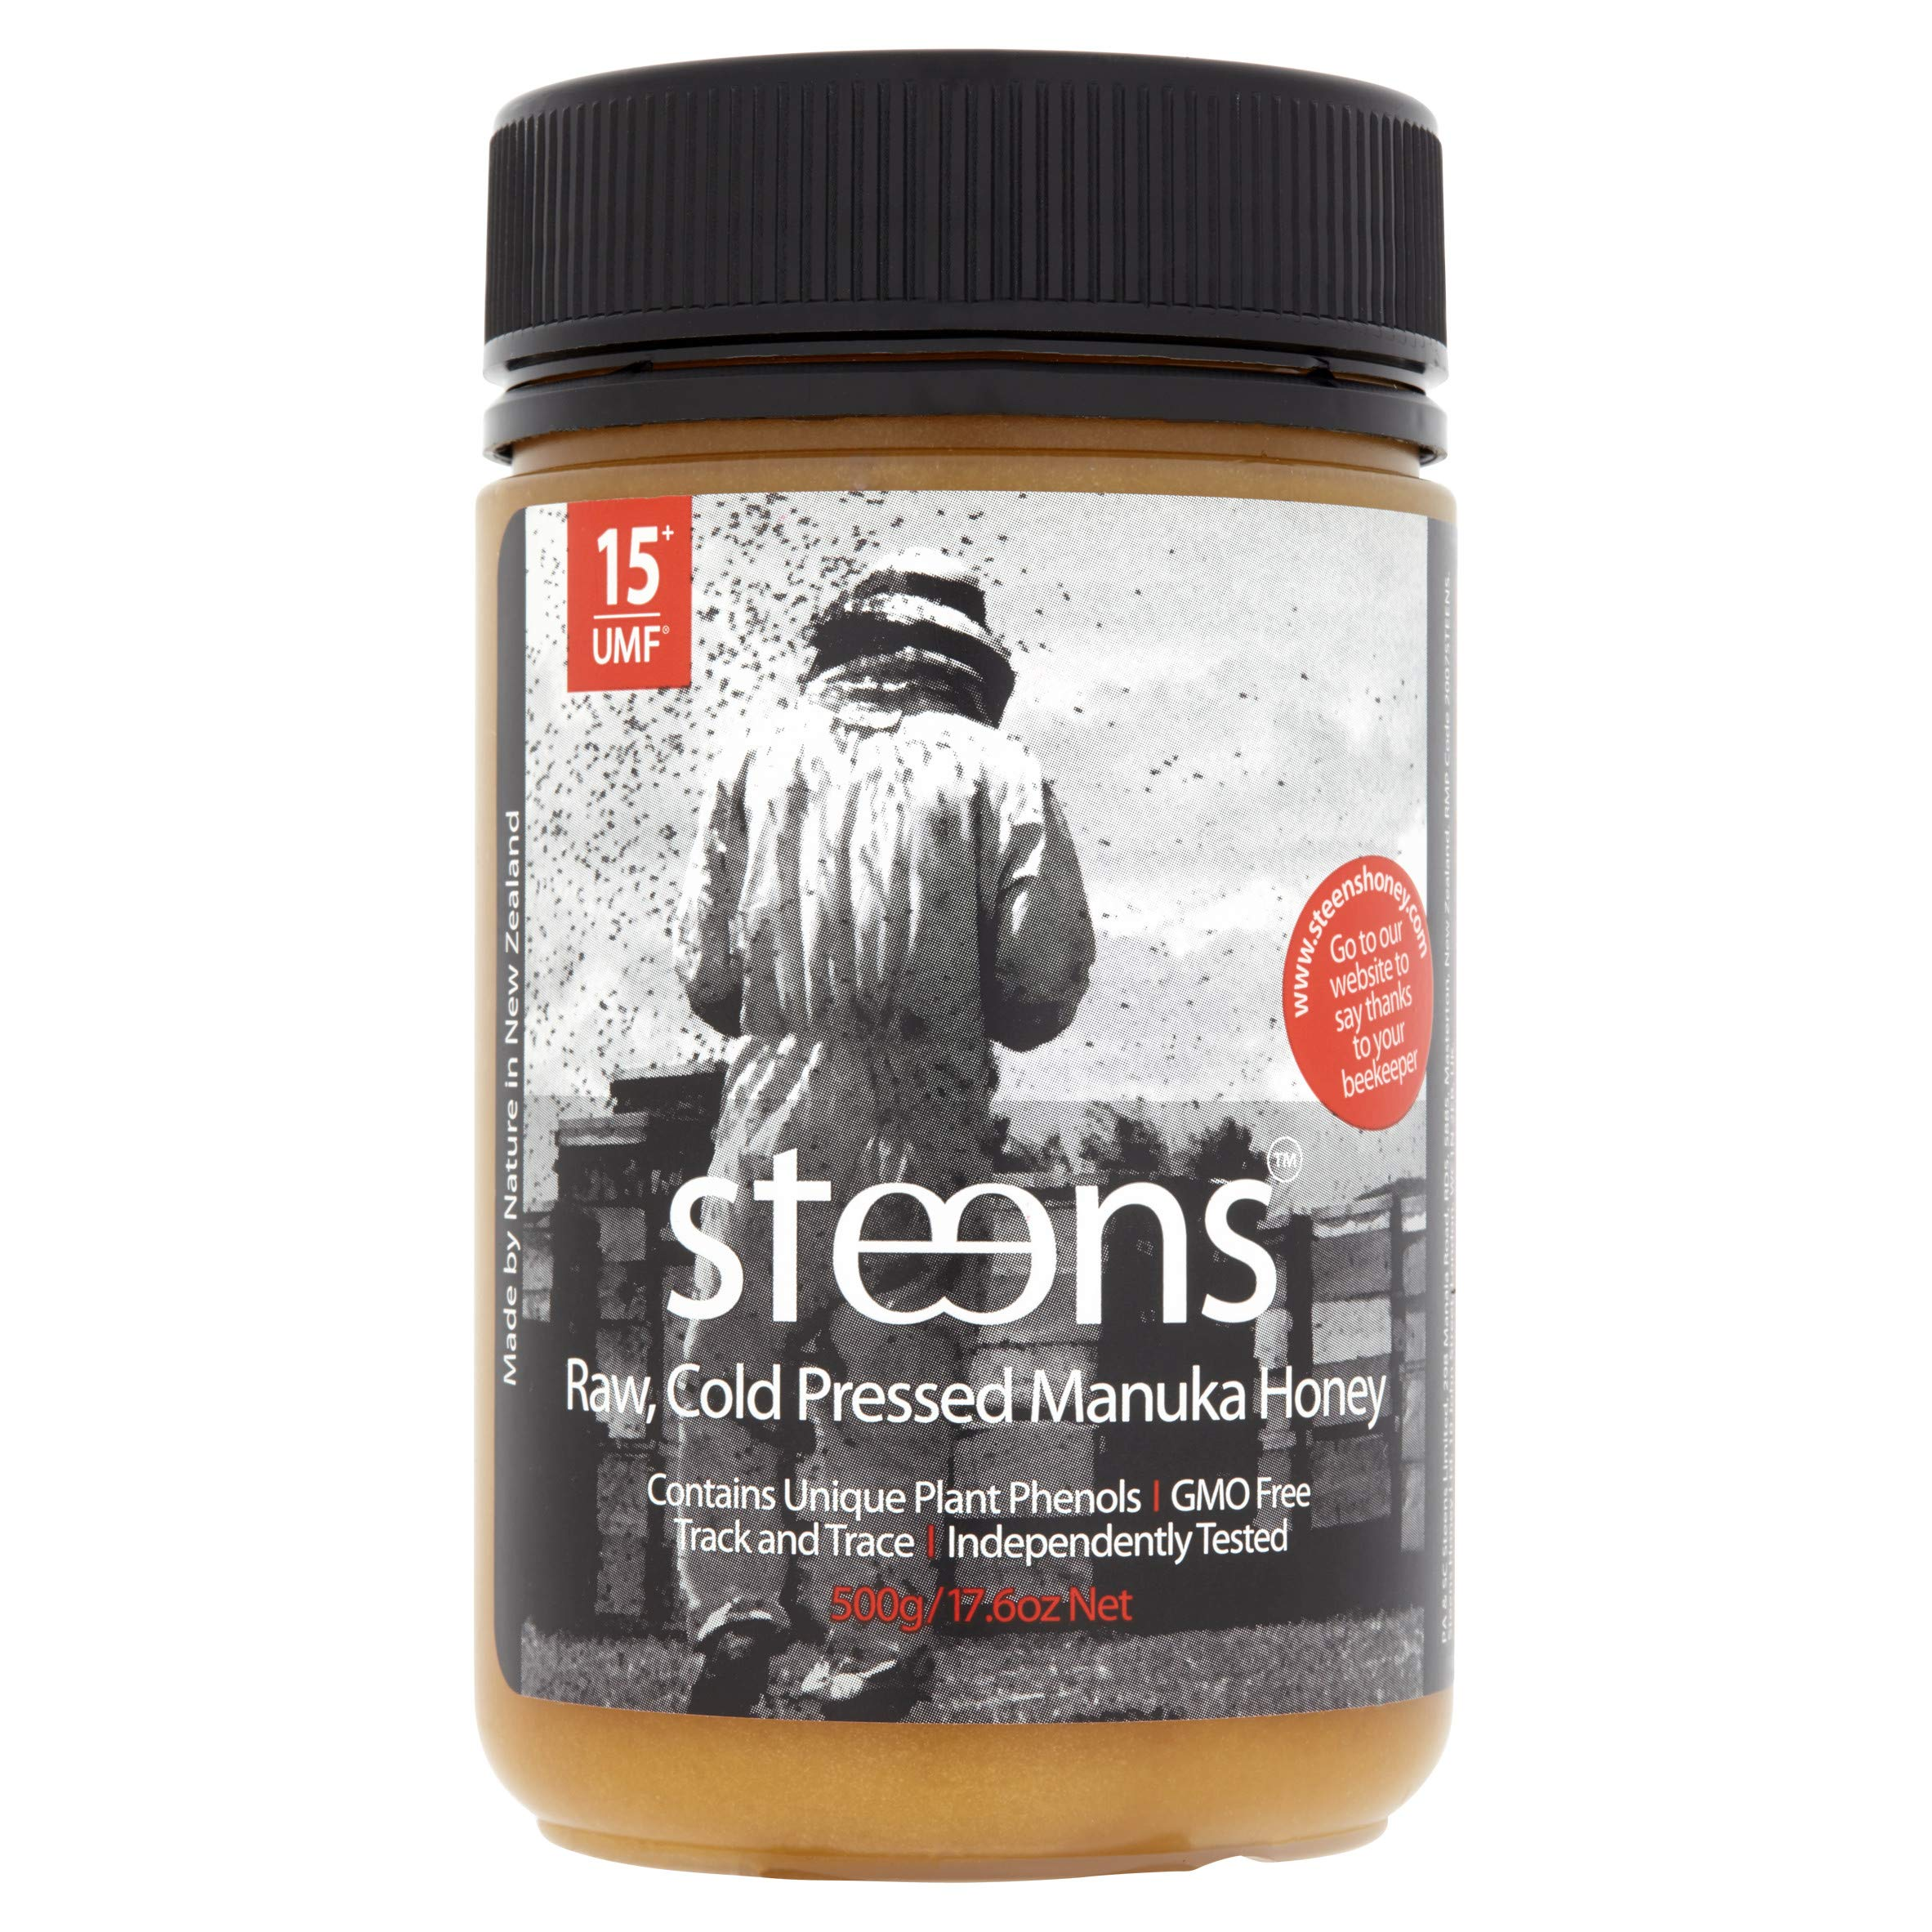 Steens Manuka Honey UMF 15 (MGO 514) 17.6 Ounce jar   Pure Raw Unpasteurized Honey From New Zealand NZ   Traceability Code on Each Label by Steens (Image #2)